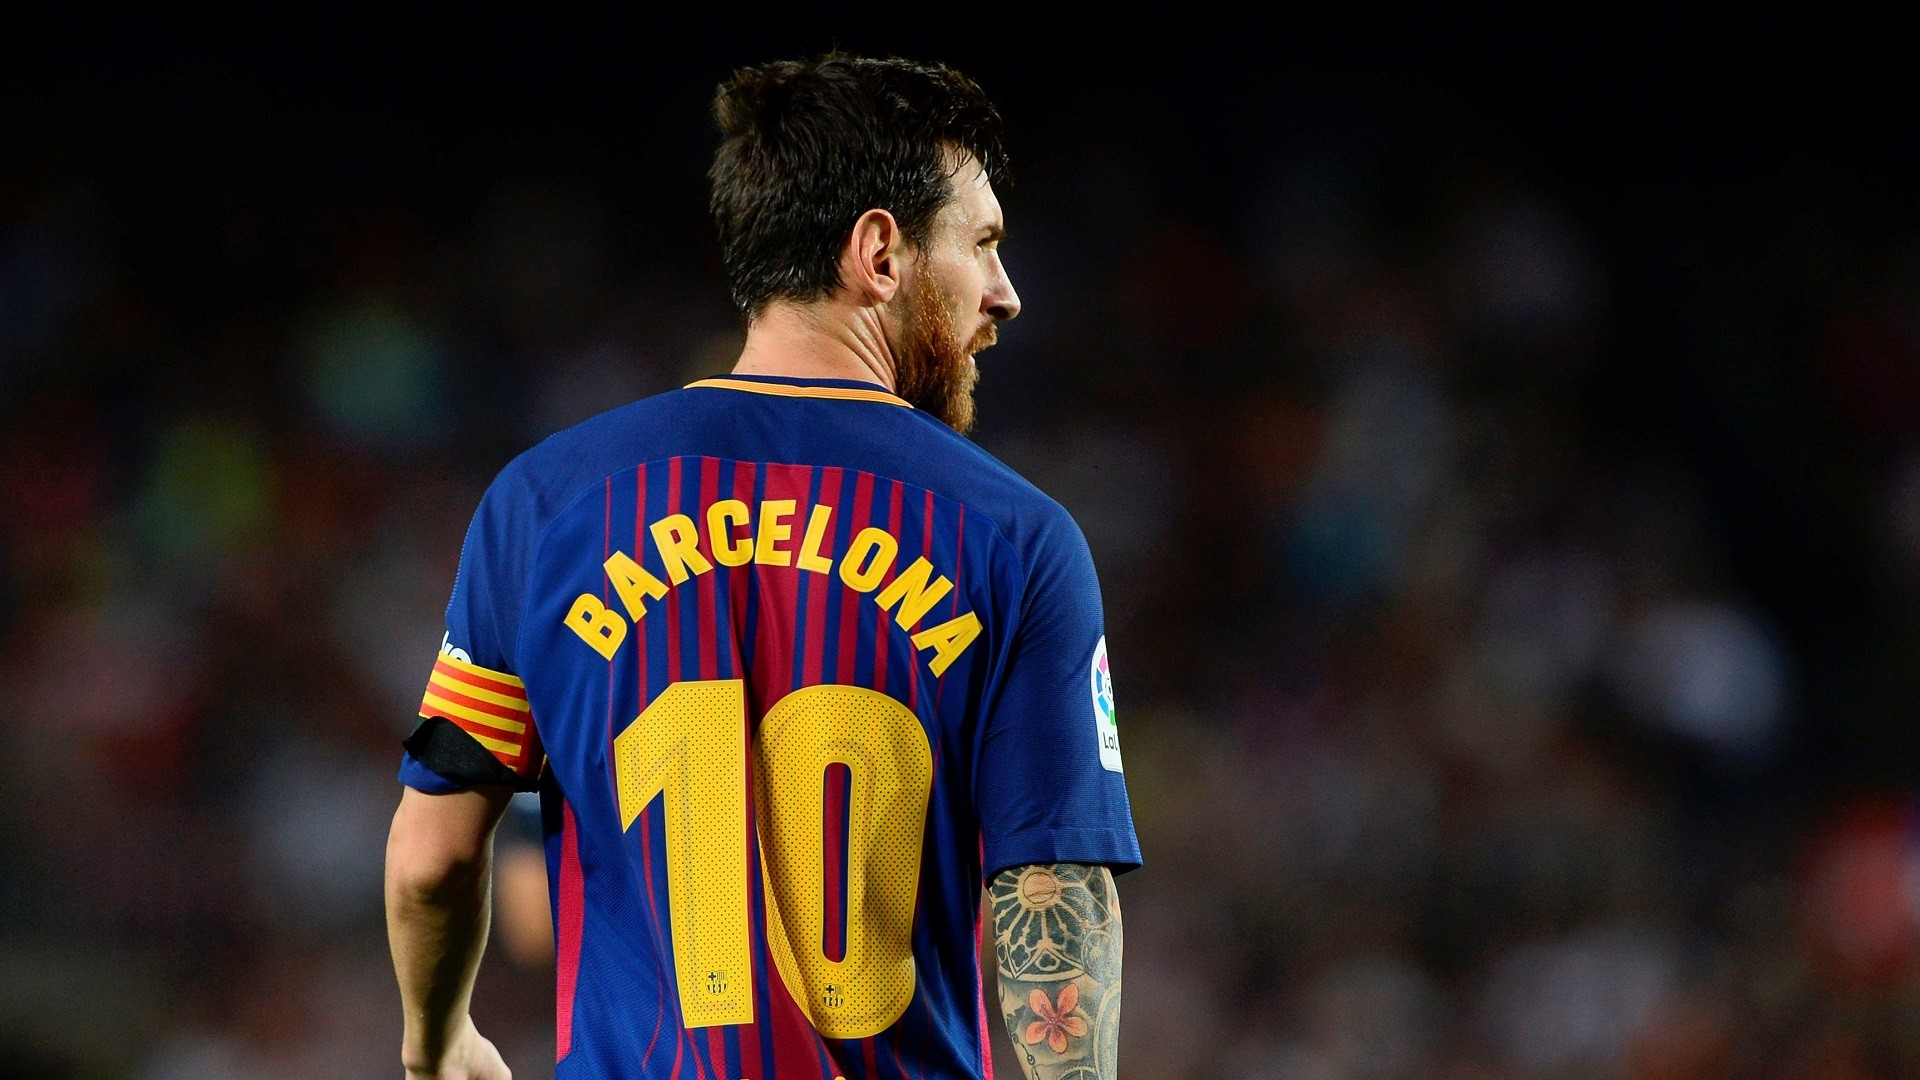 Lionel Messi Wallpapers Hd Resolution Festival